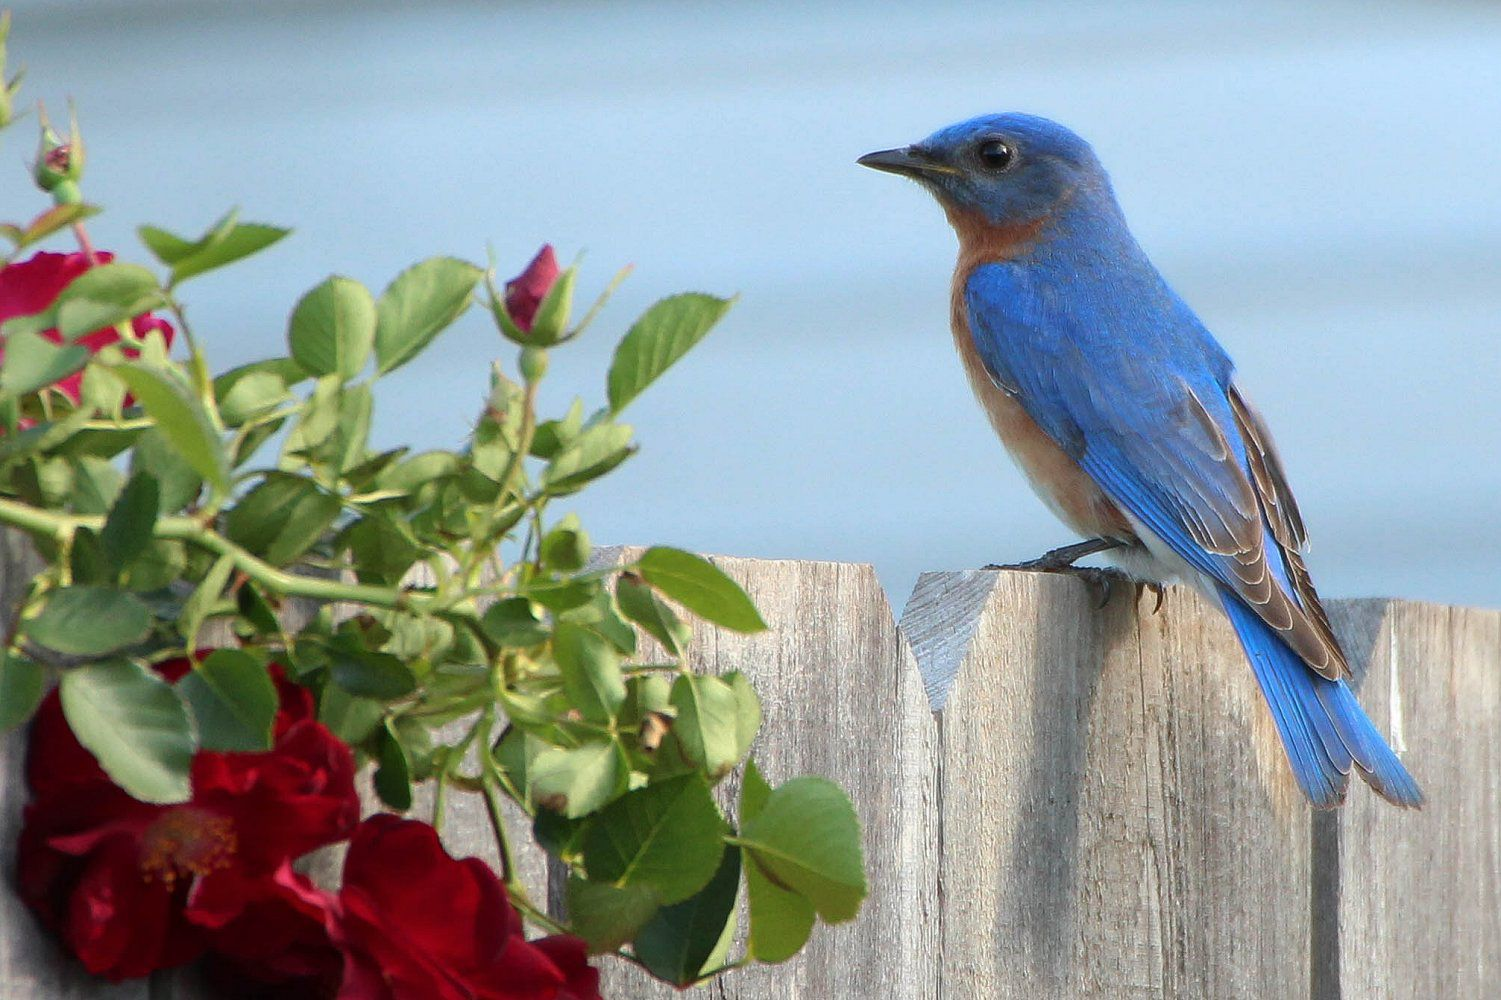 Tips And Tricks For Attracting Bluebirds To Your Yard